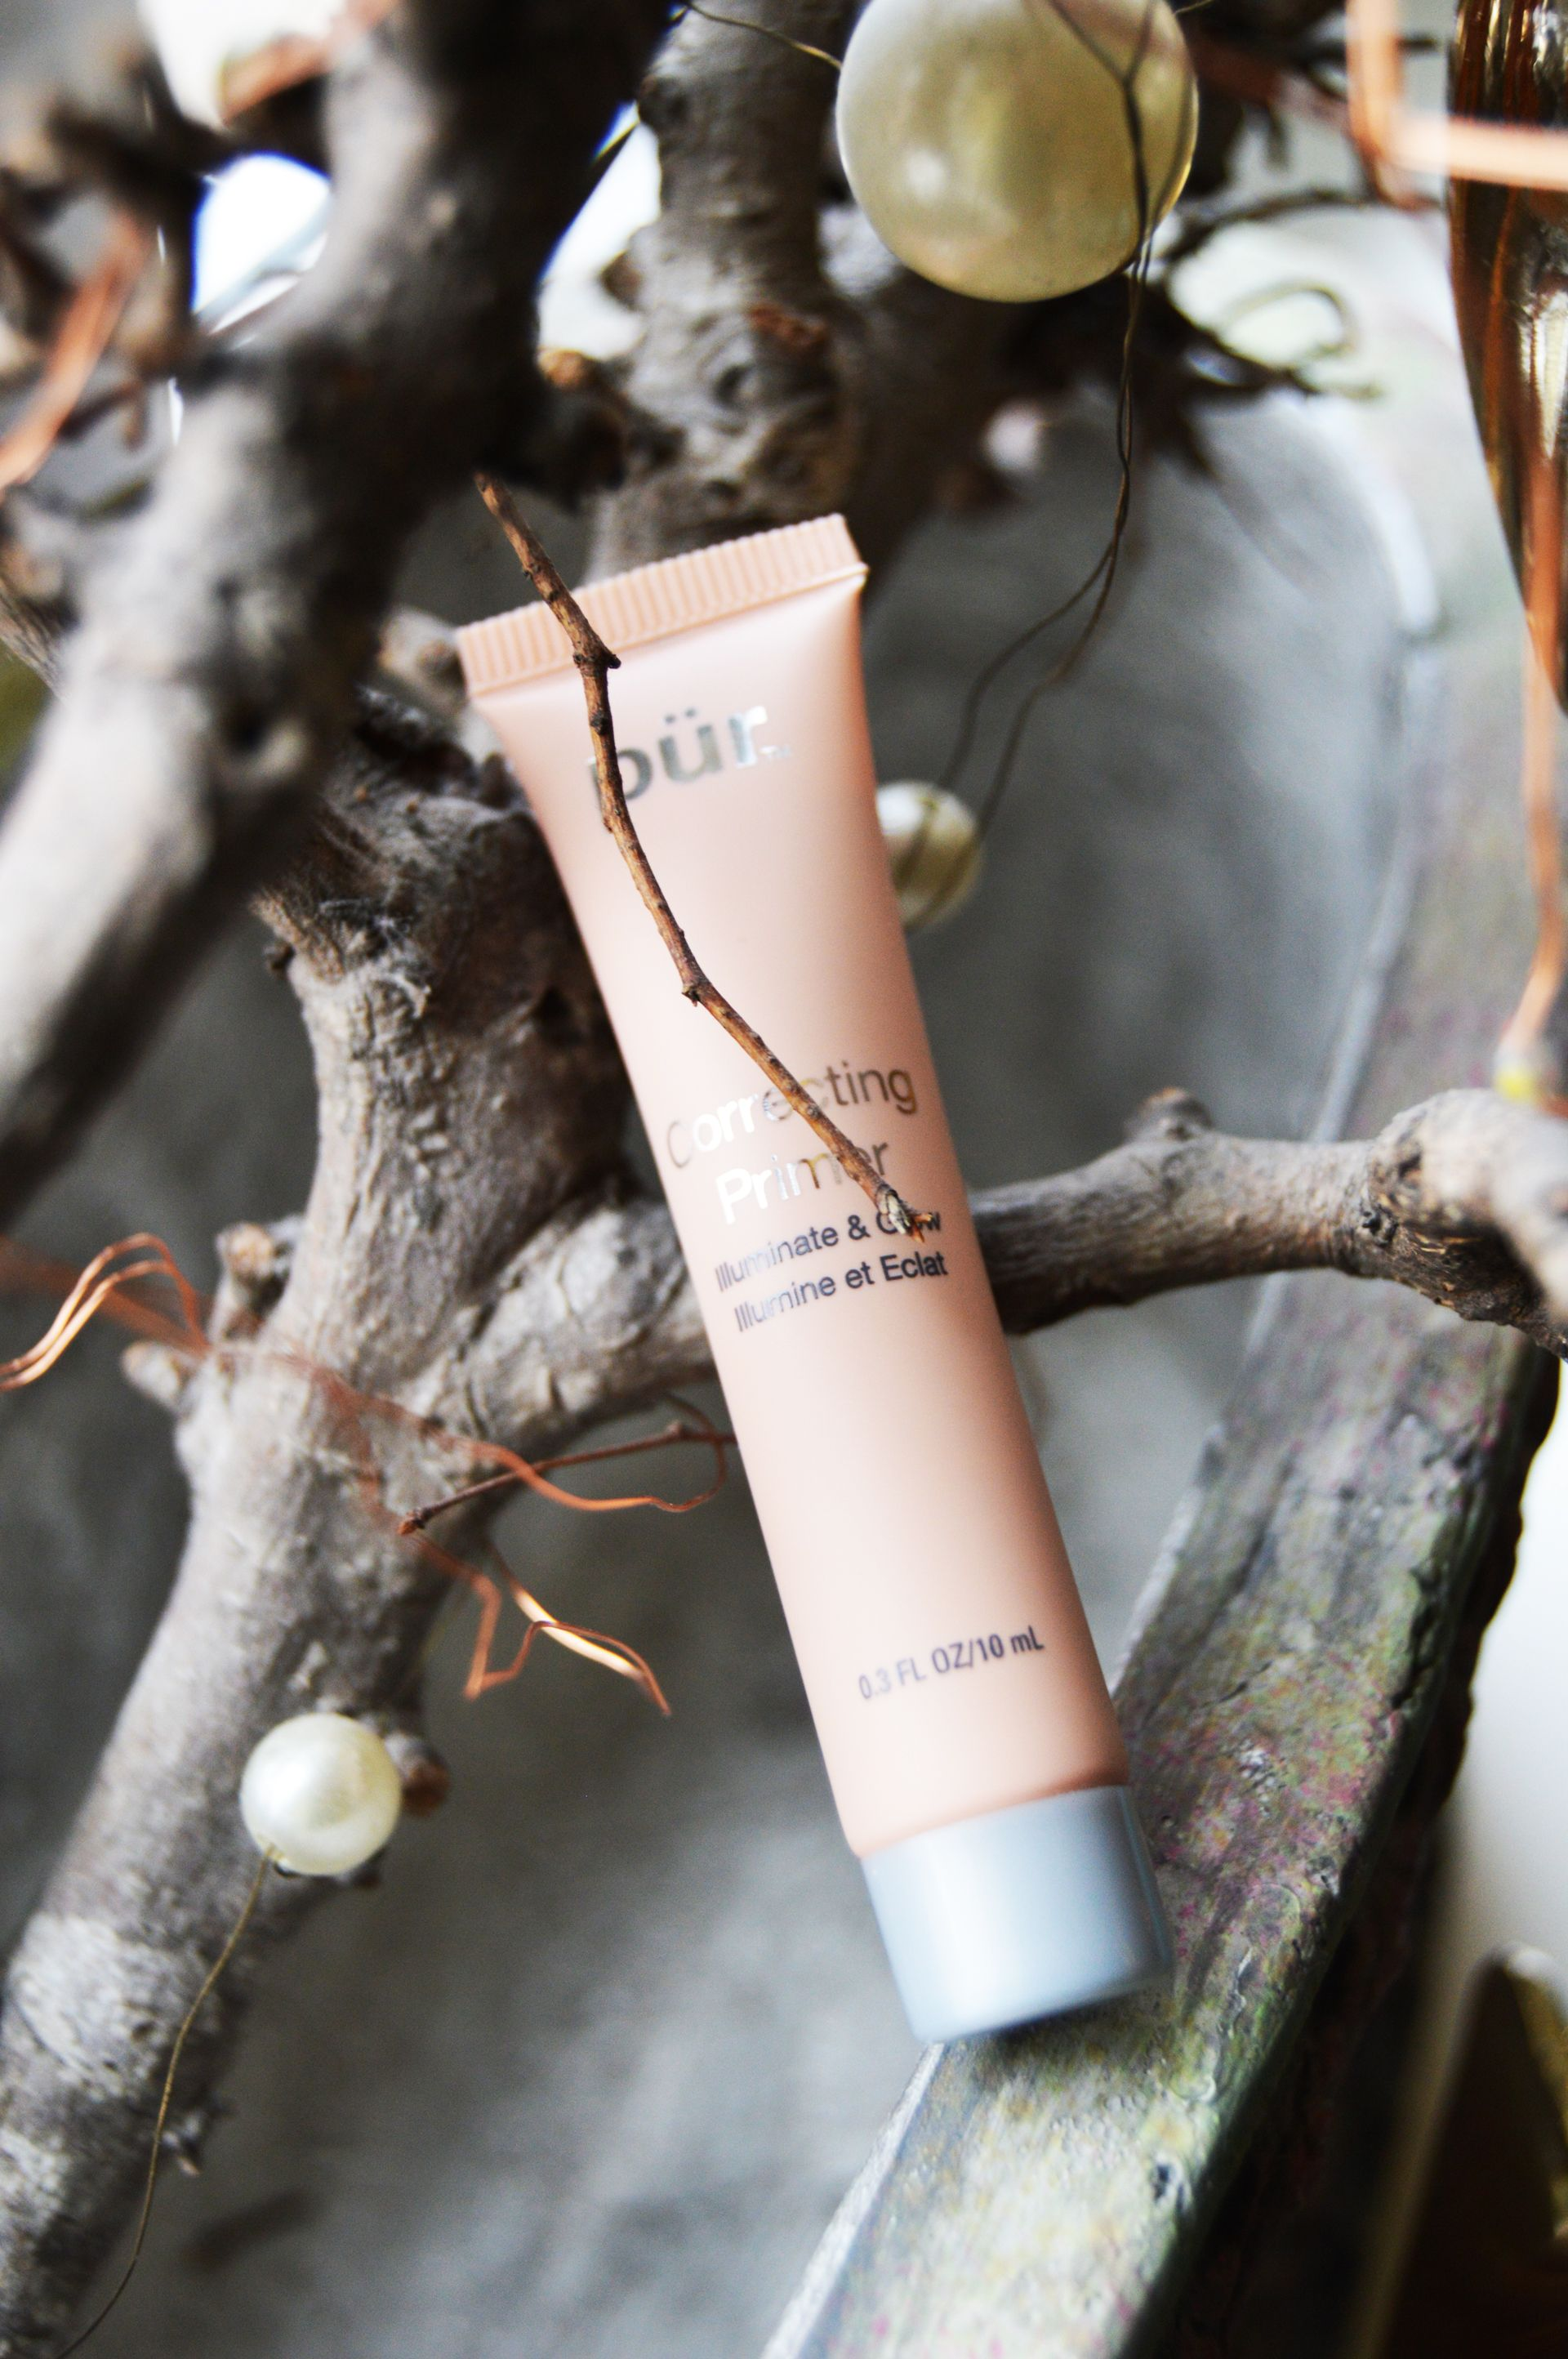 pur Correcting Primer Illuminate & Glow aims toilluminating face primer preps skin and minimizes the appearance of pores, lines, wrinkles and imperfections. M&S Advent Calendar